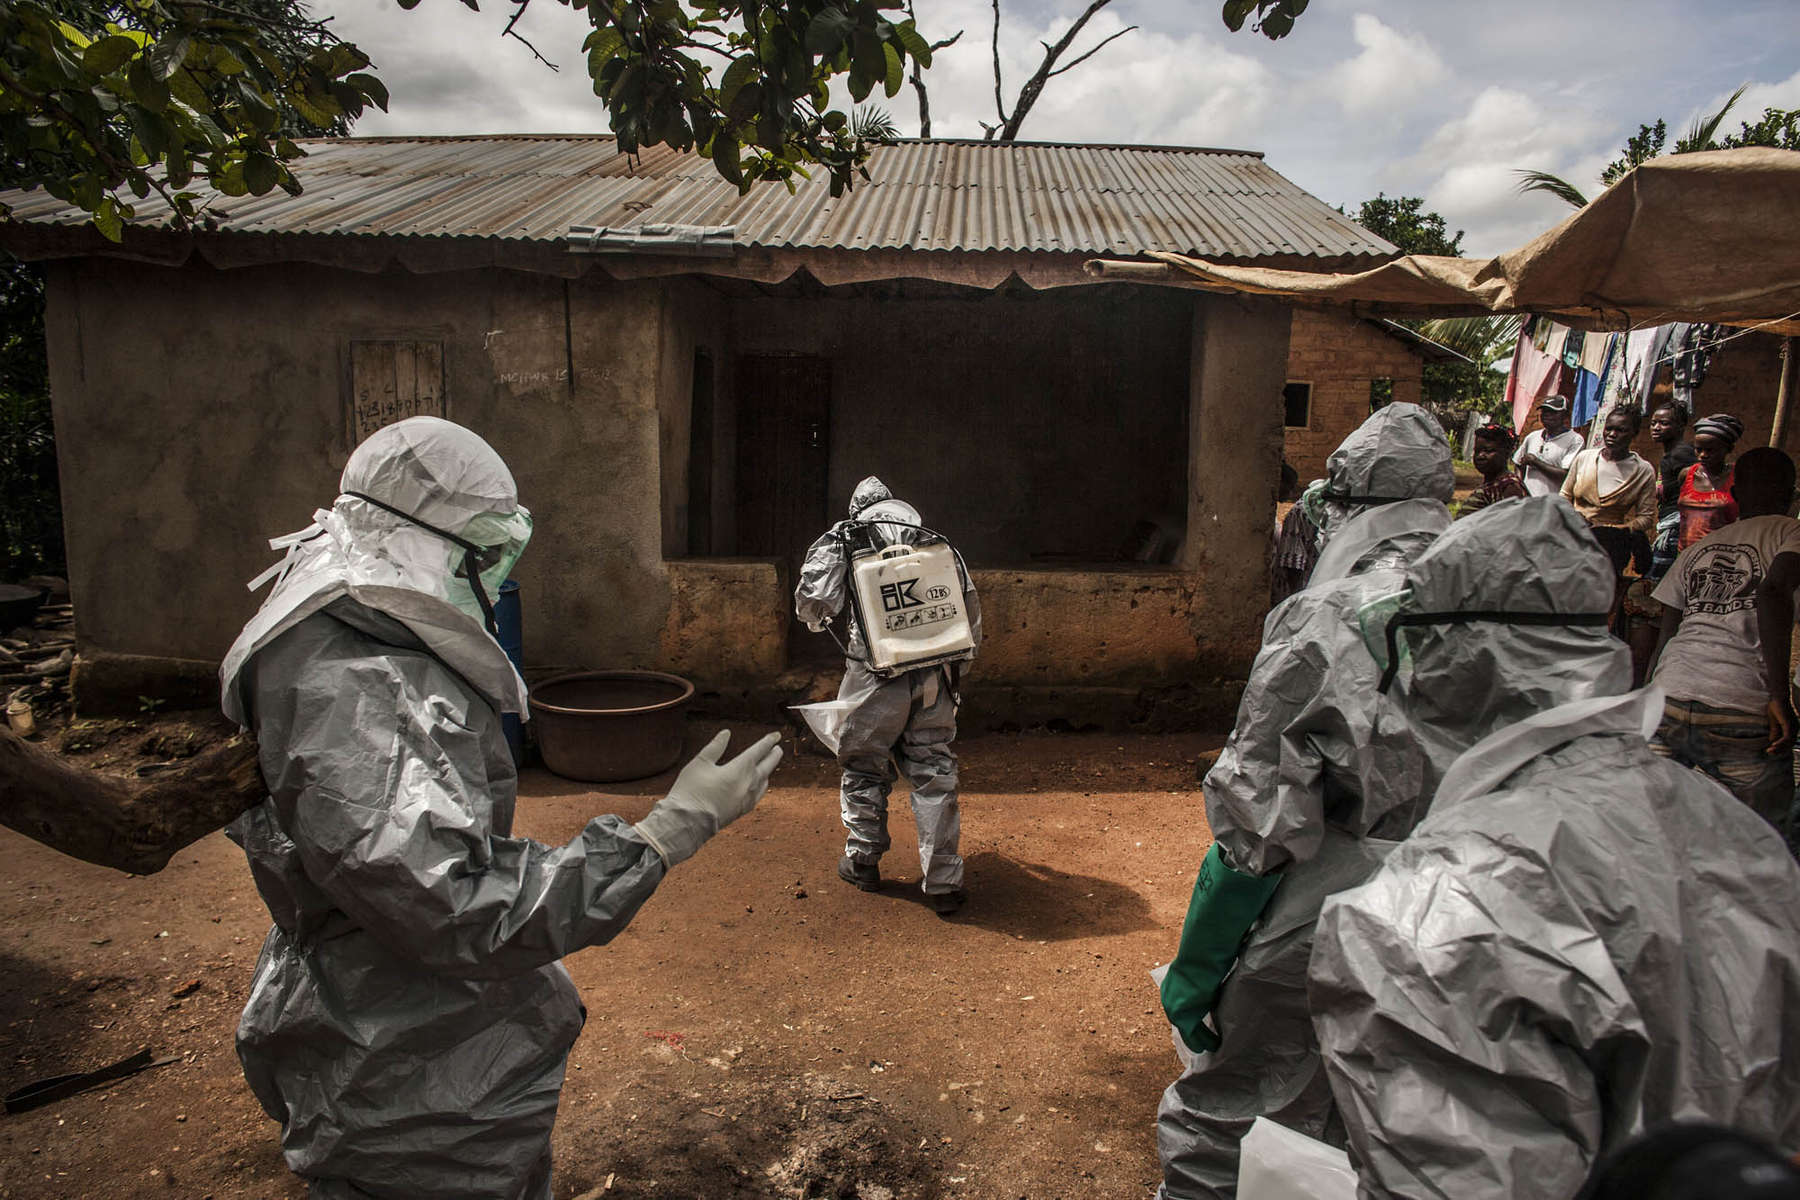 Members of a Red Cross burial team don personal protective equipment and spray chlorine as they prepare to enter the home of a woman suspected of dying of Ebola in the village of Dia on Monday, August 18, 2014. The government of Sierra Leone mandates that all deaths in which the cause is unclear be treated as potential Ebola cases. Contact with the bodies of Ebola victims is a leading cause of virus transmission. (Pete Muller/Prime for the Washington Post)